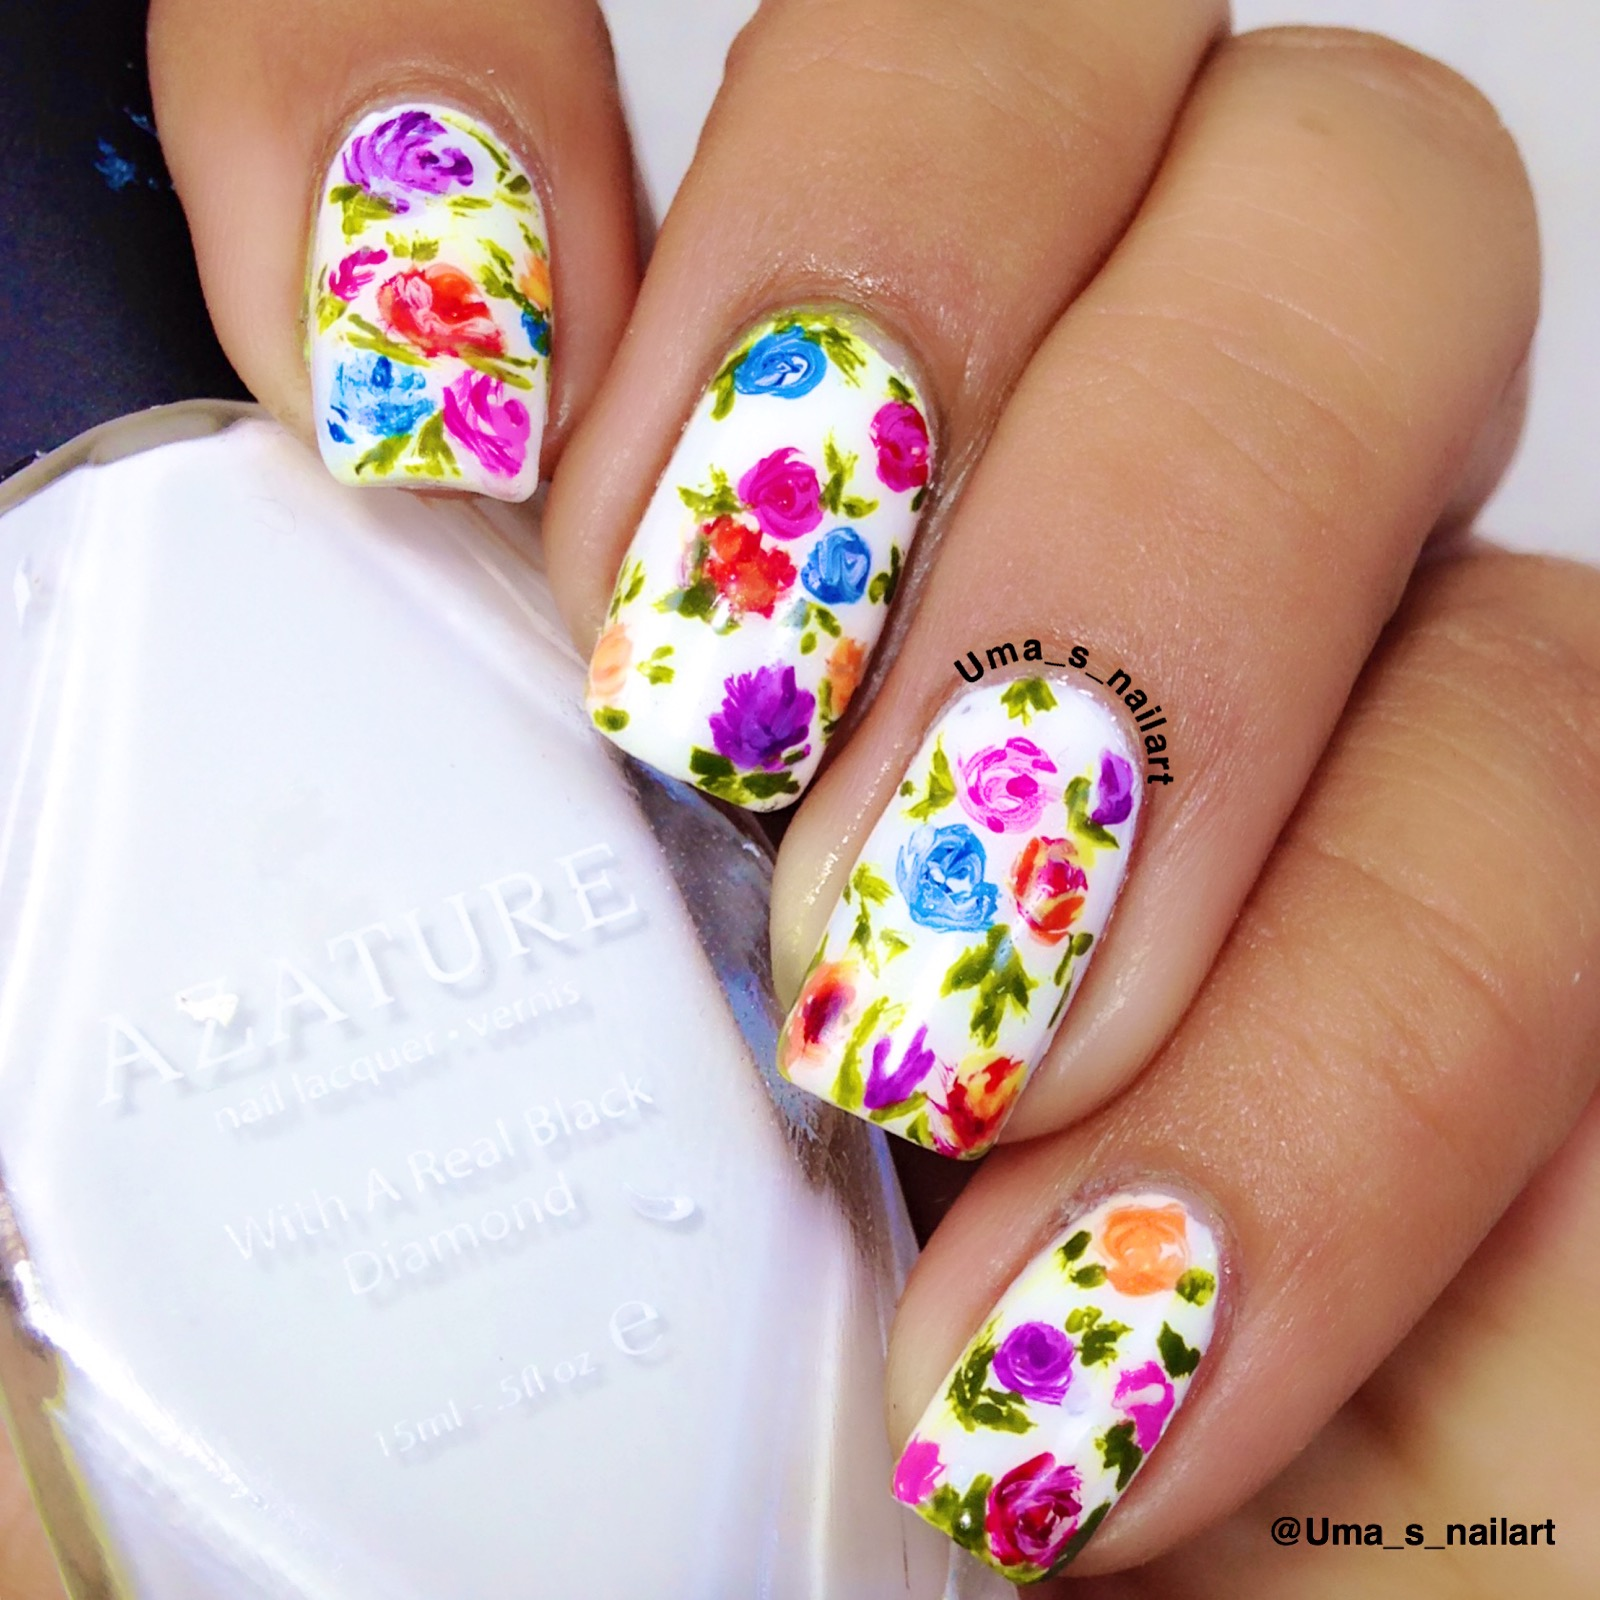 Umas nail art freehand spring flowers nail art there are two things in my life which make me very happy dance and flowers so i chose to do a floral themed nail art for the challenge prinsesfo Images